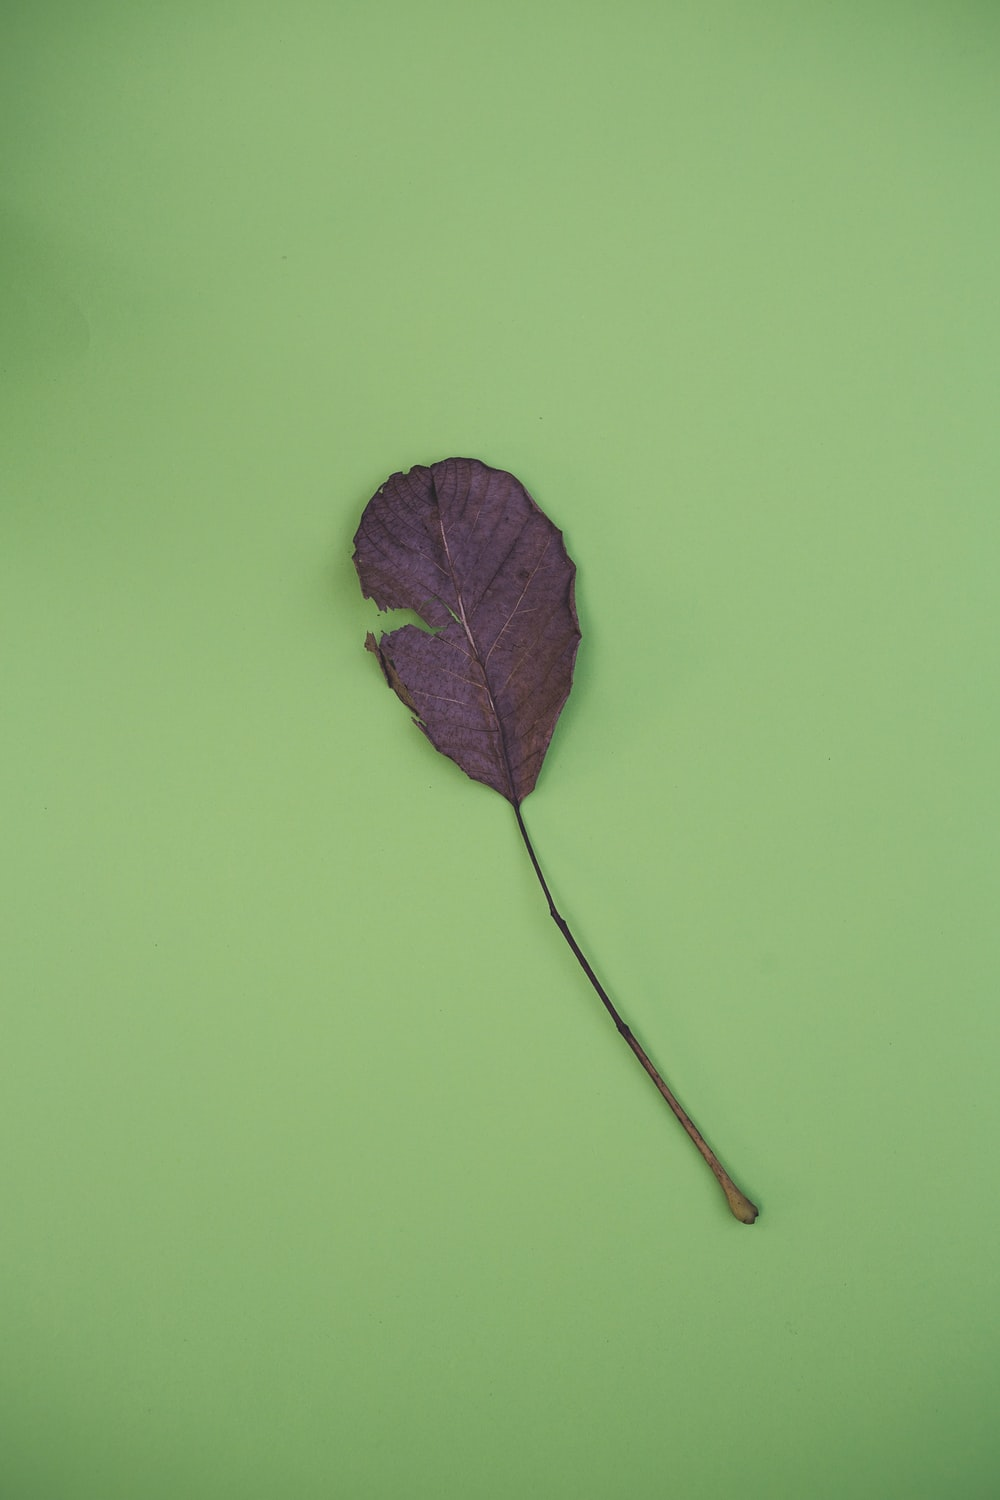 brown leaf on green surface